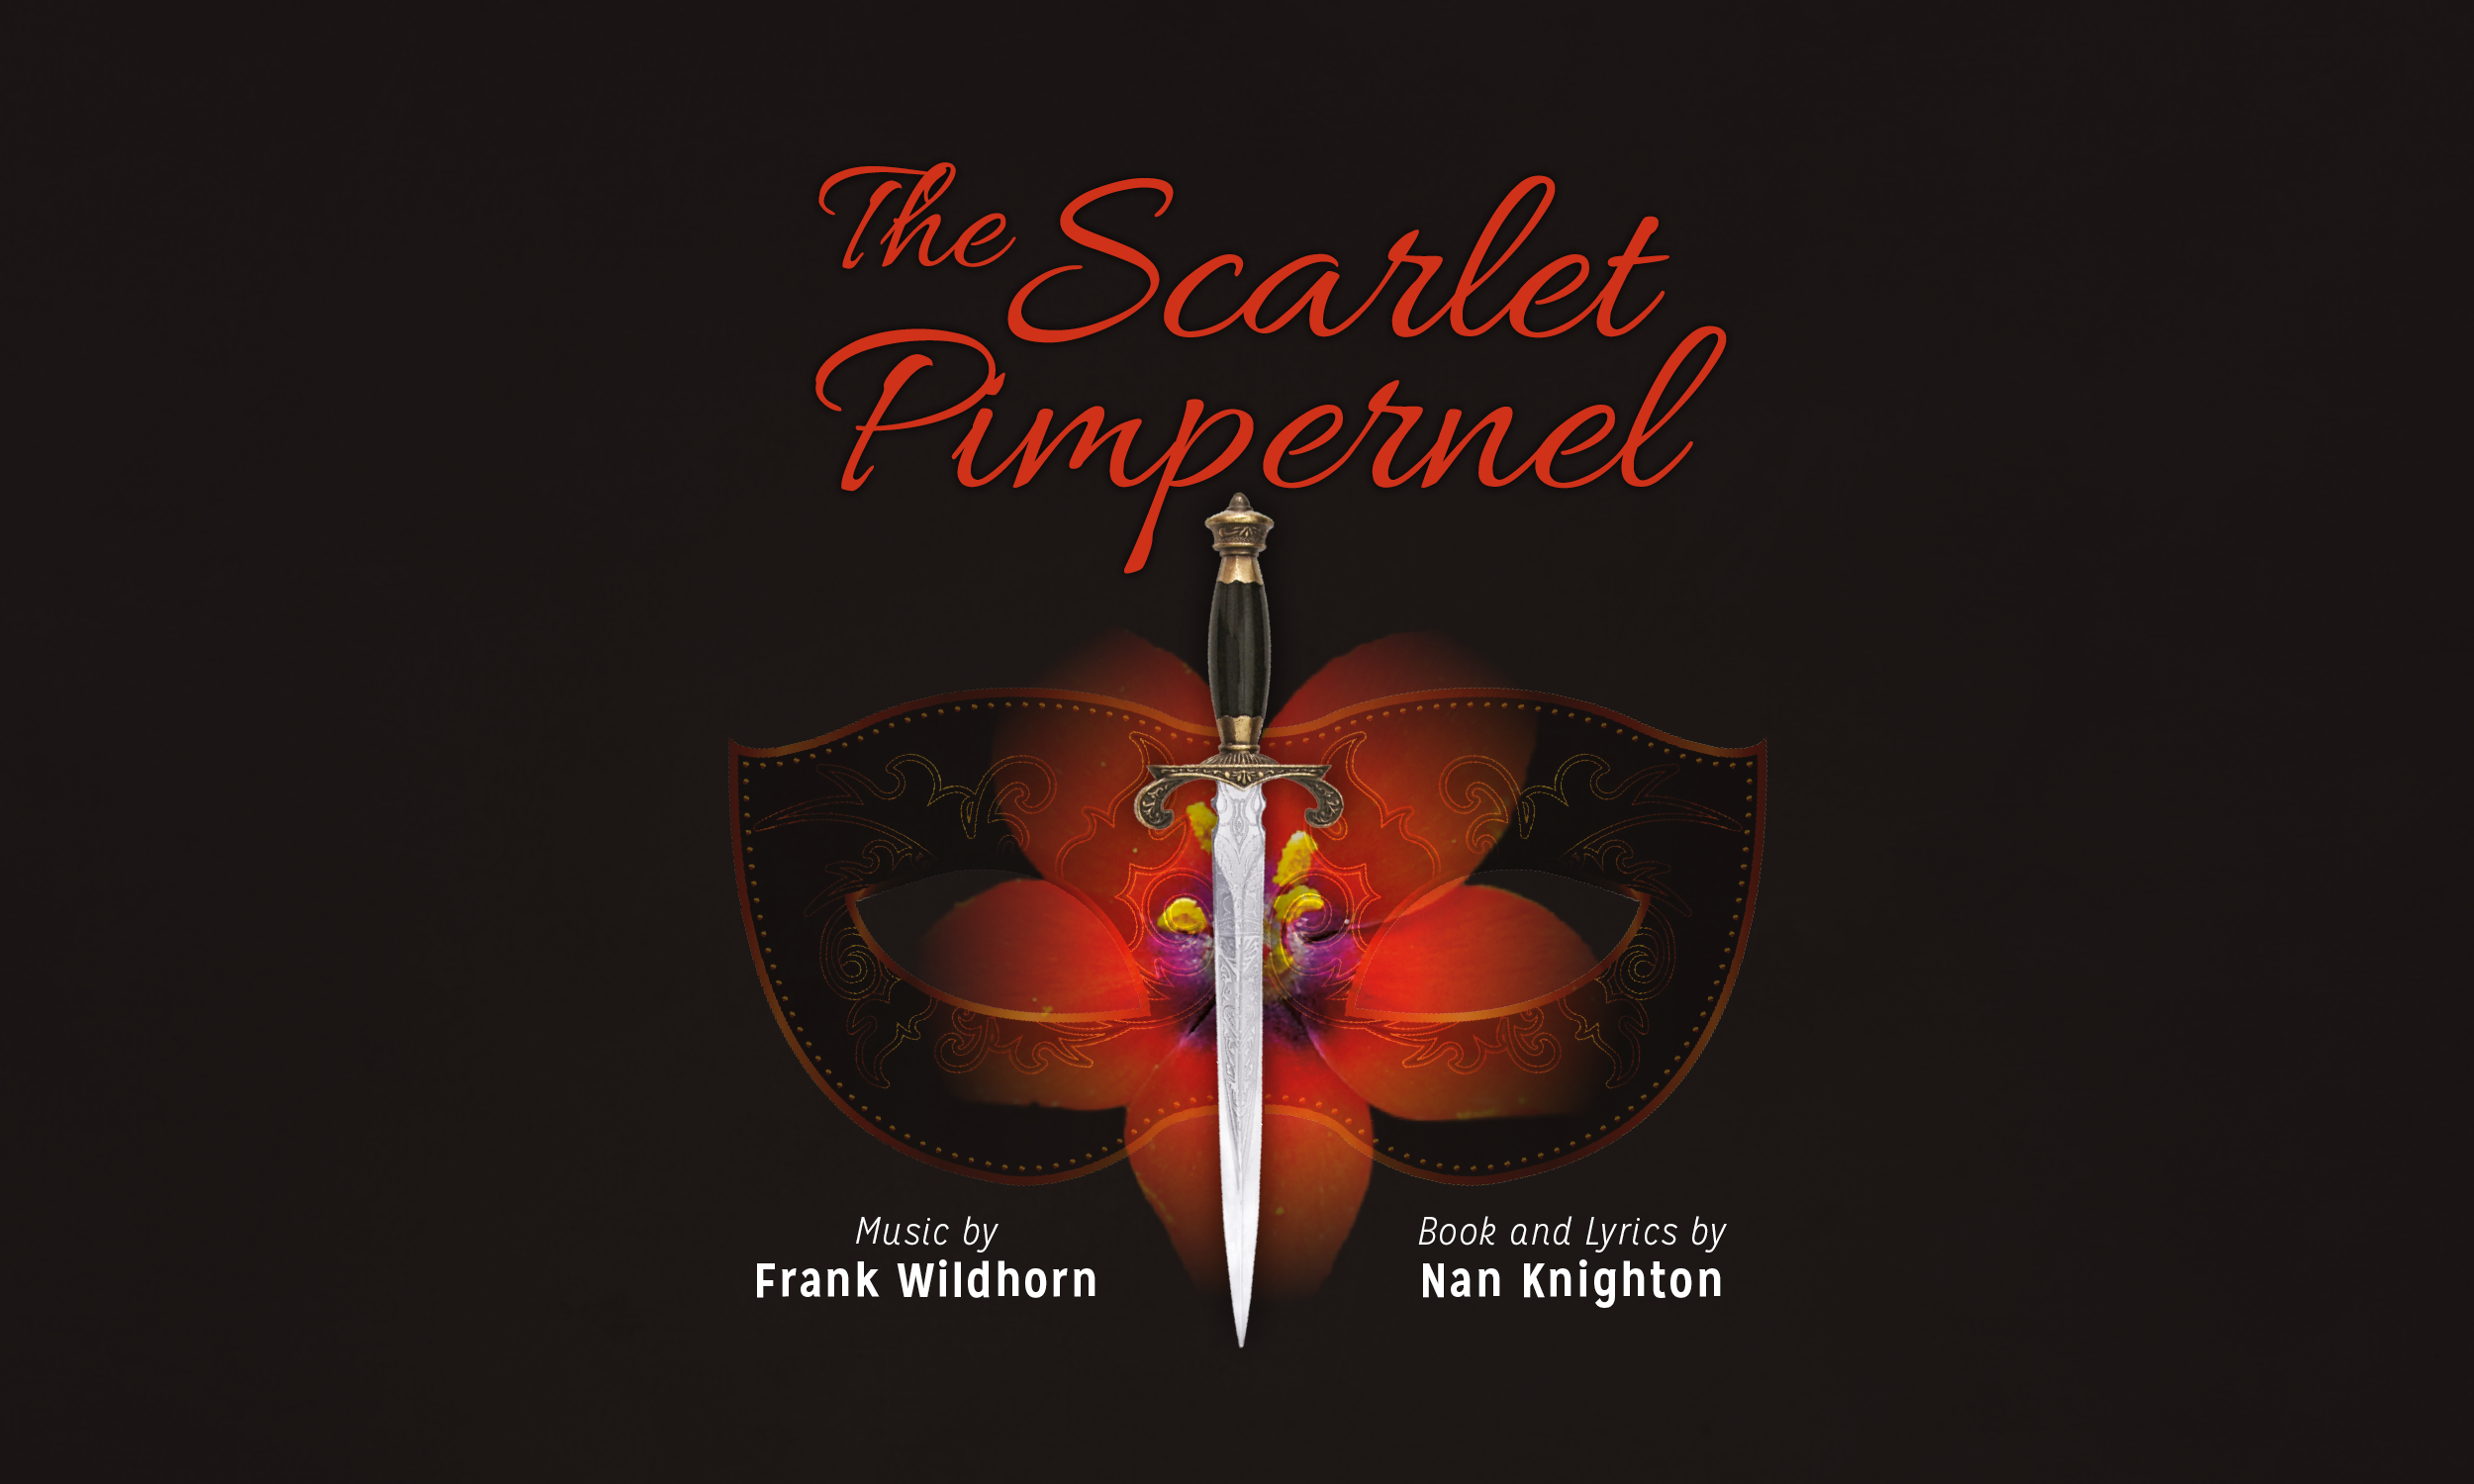 MCP The Scarlet Pimpernel Squarespace 1500x2500px.png